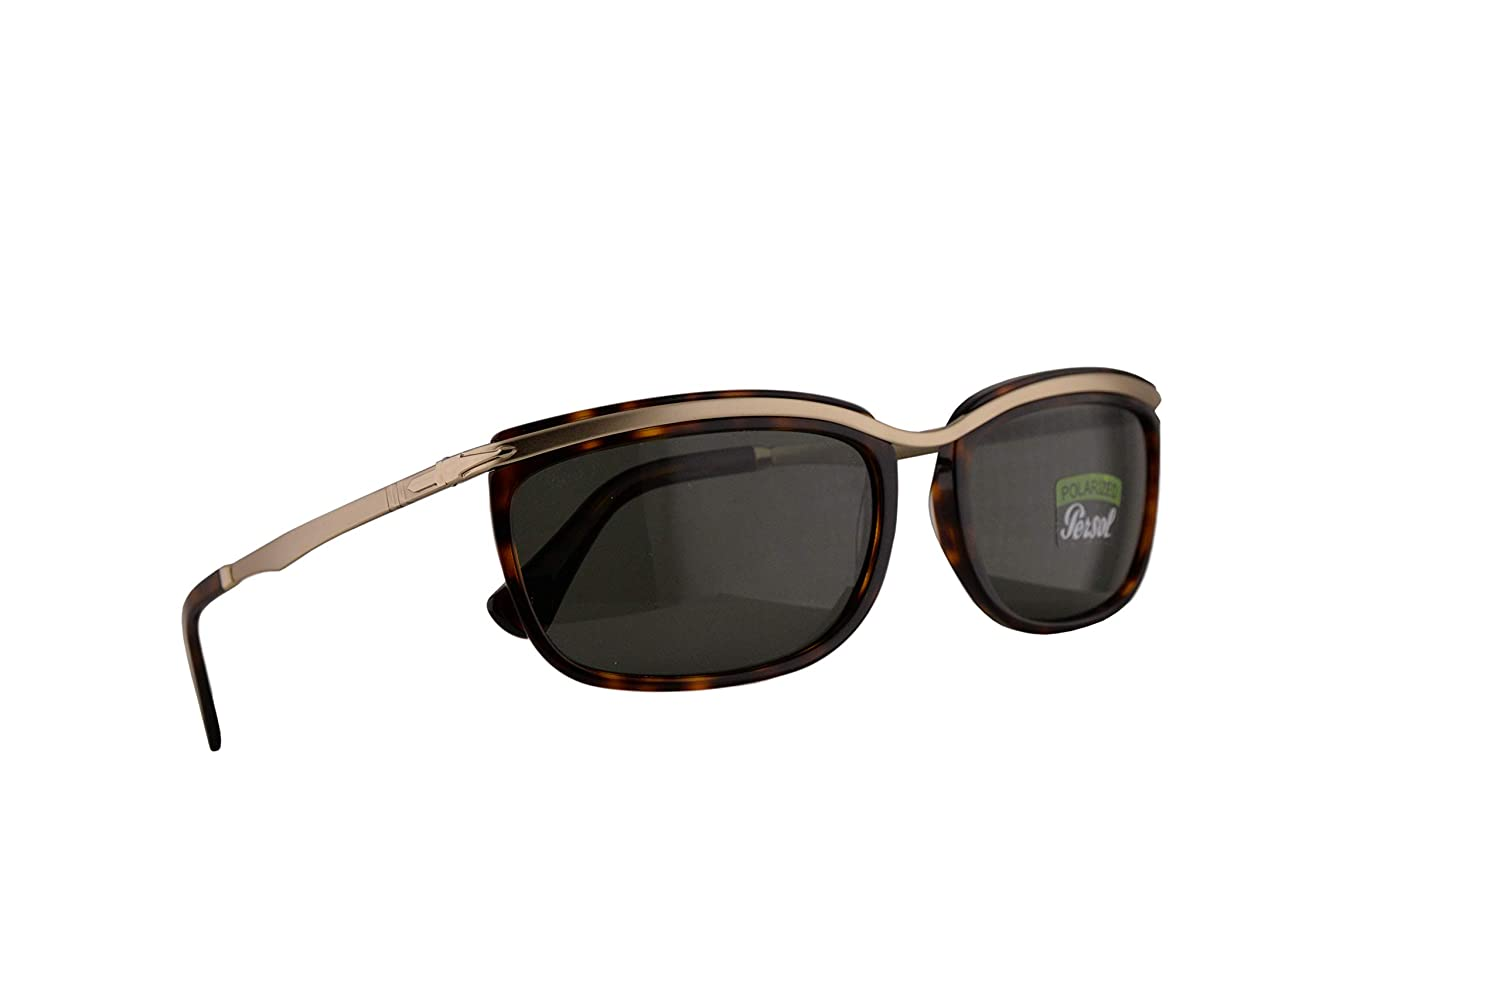 Persol 3229-S Key West II Sunglasses Havana w//Polarized Green 60mm Lens 2458 PO 3229S PO3229S PO3229-S